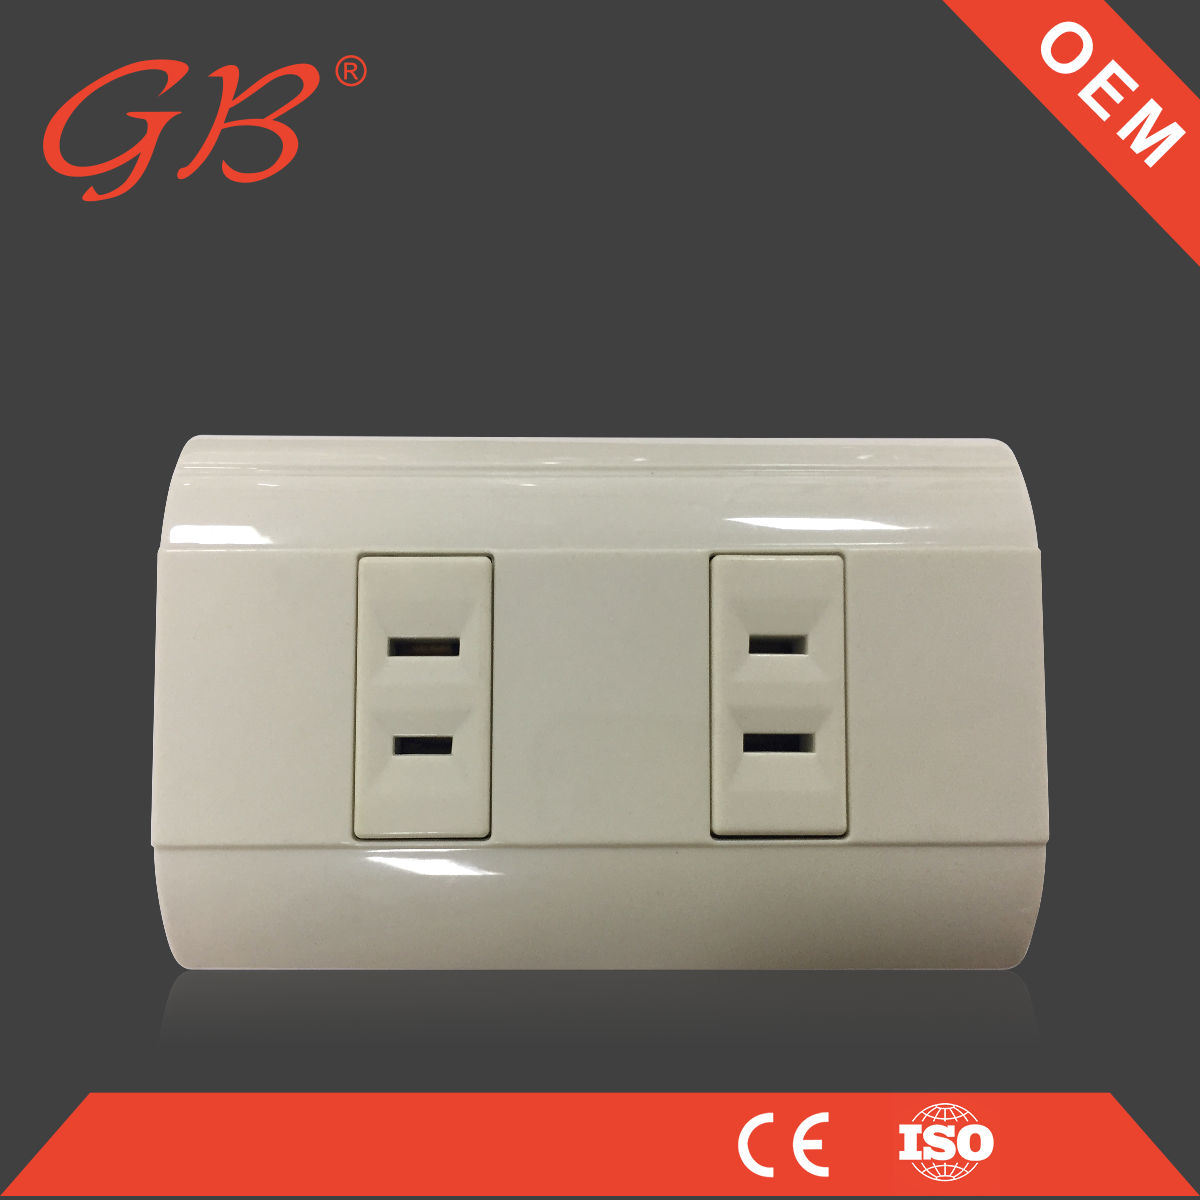 China Hot Sale Electrical Electric Wall Switch Socket Outlet - China ...